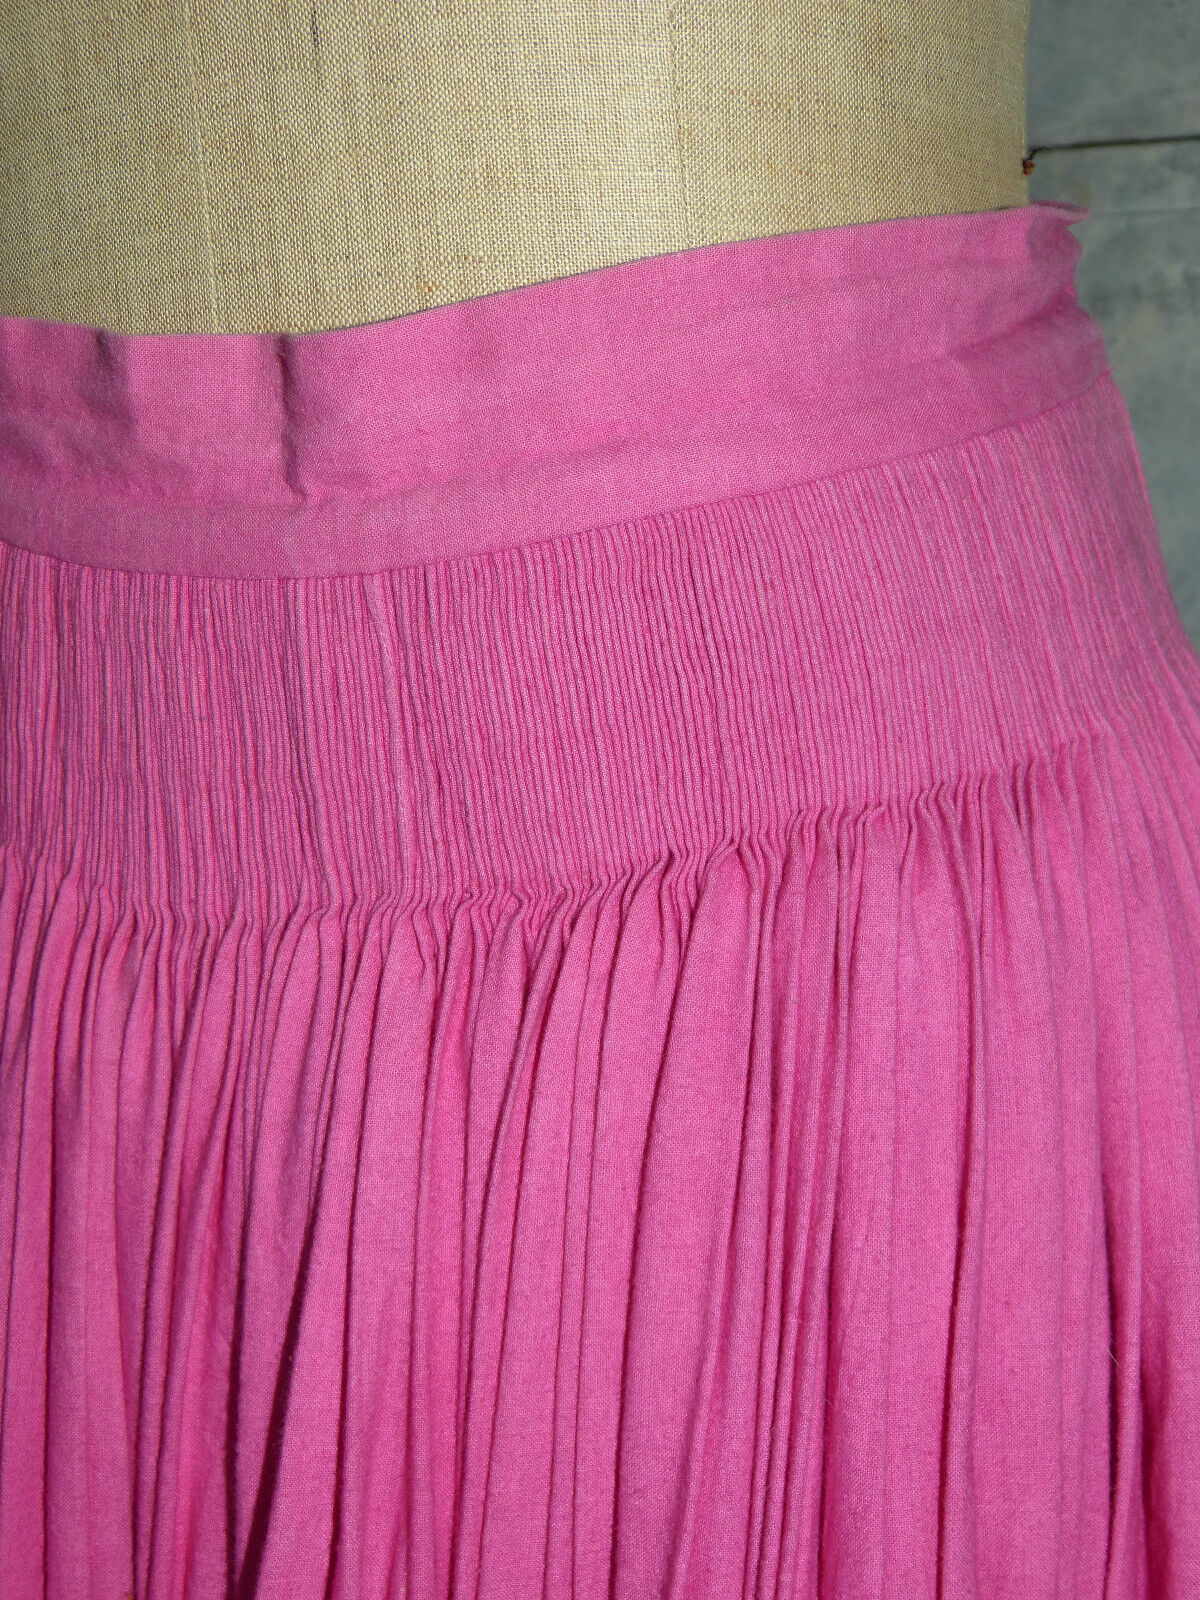 MAGNIFIQUE MAGNIFIQUE MAGNIFIQUE JUPE LONGUE rosa VINTAGE SOULEIADO PROVENCE FRANCE T F 36 38 05ded5